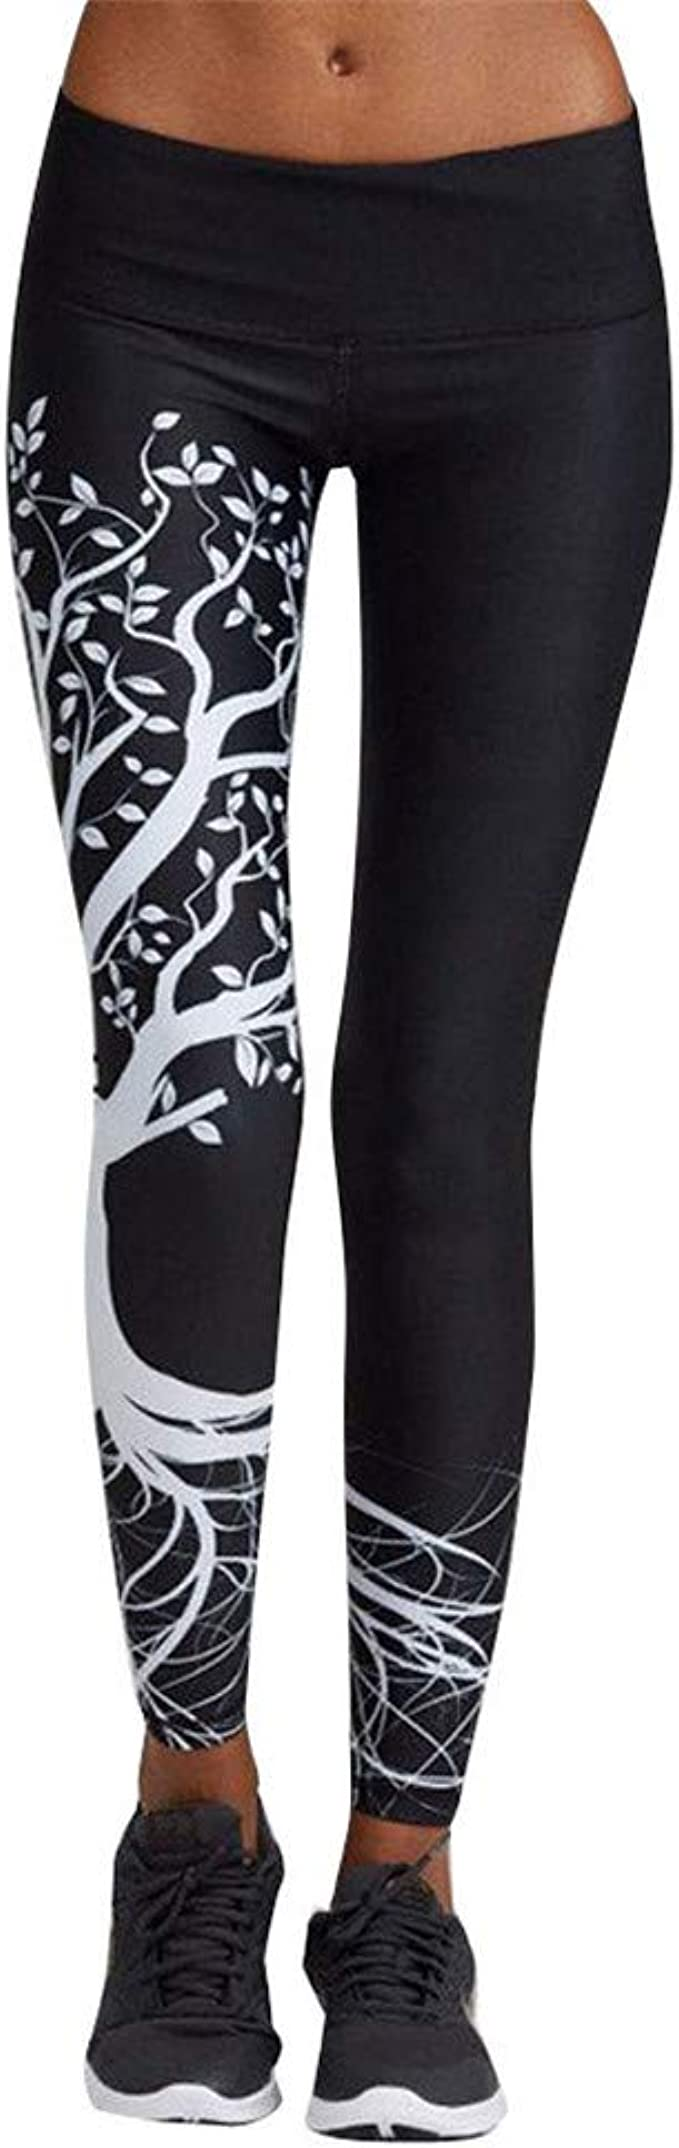 Amazon.com: Xinantime Womens Sport Running Pant Printed ...